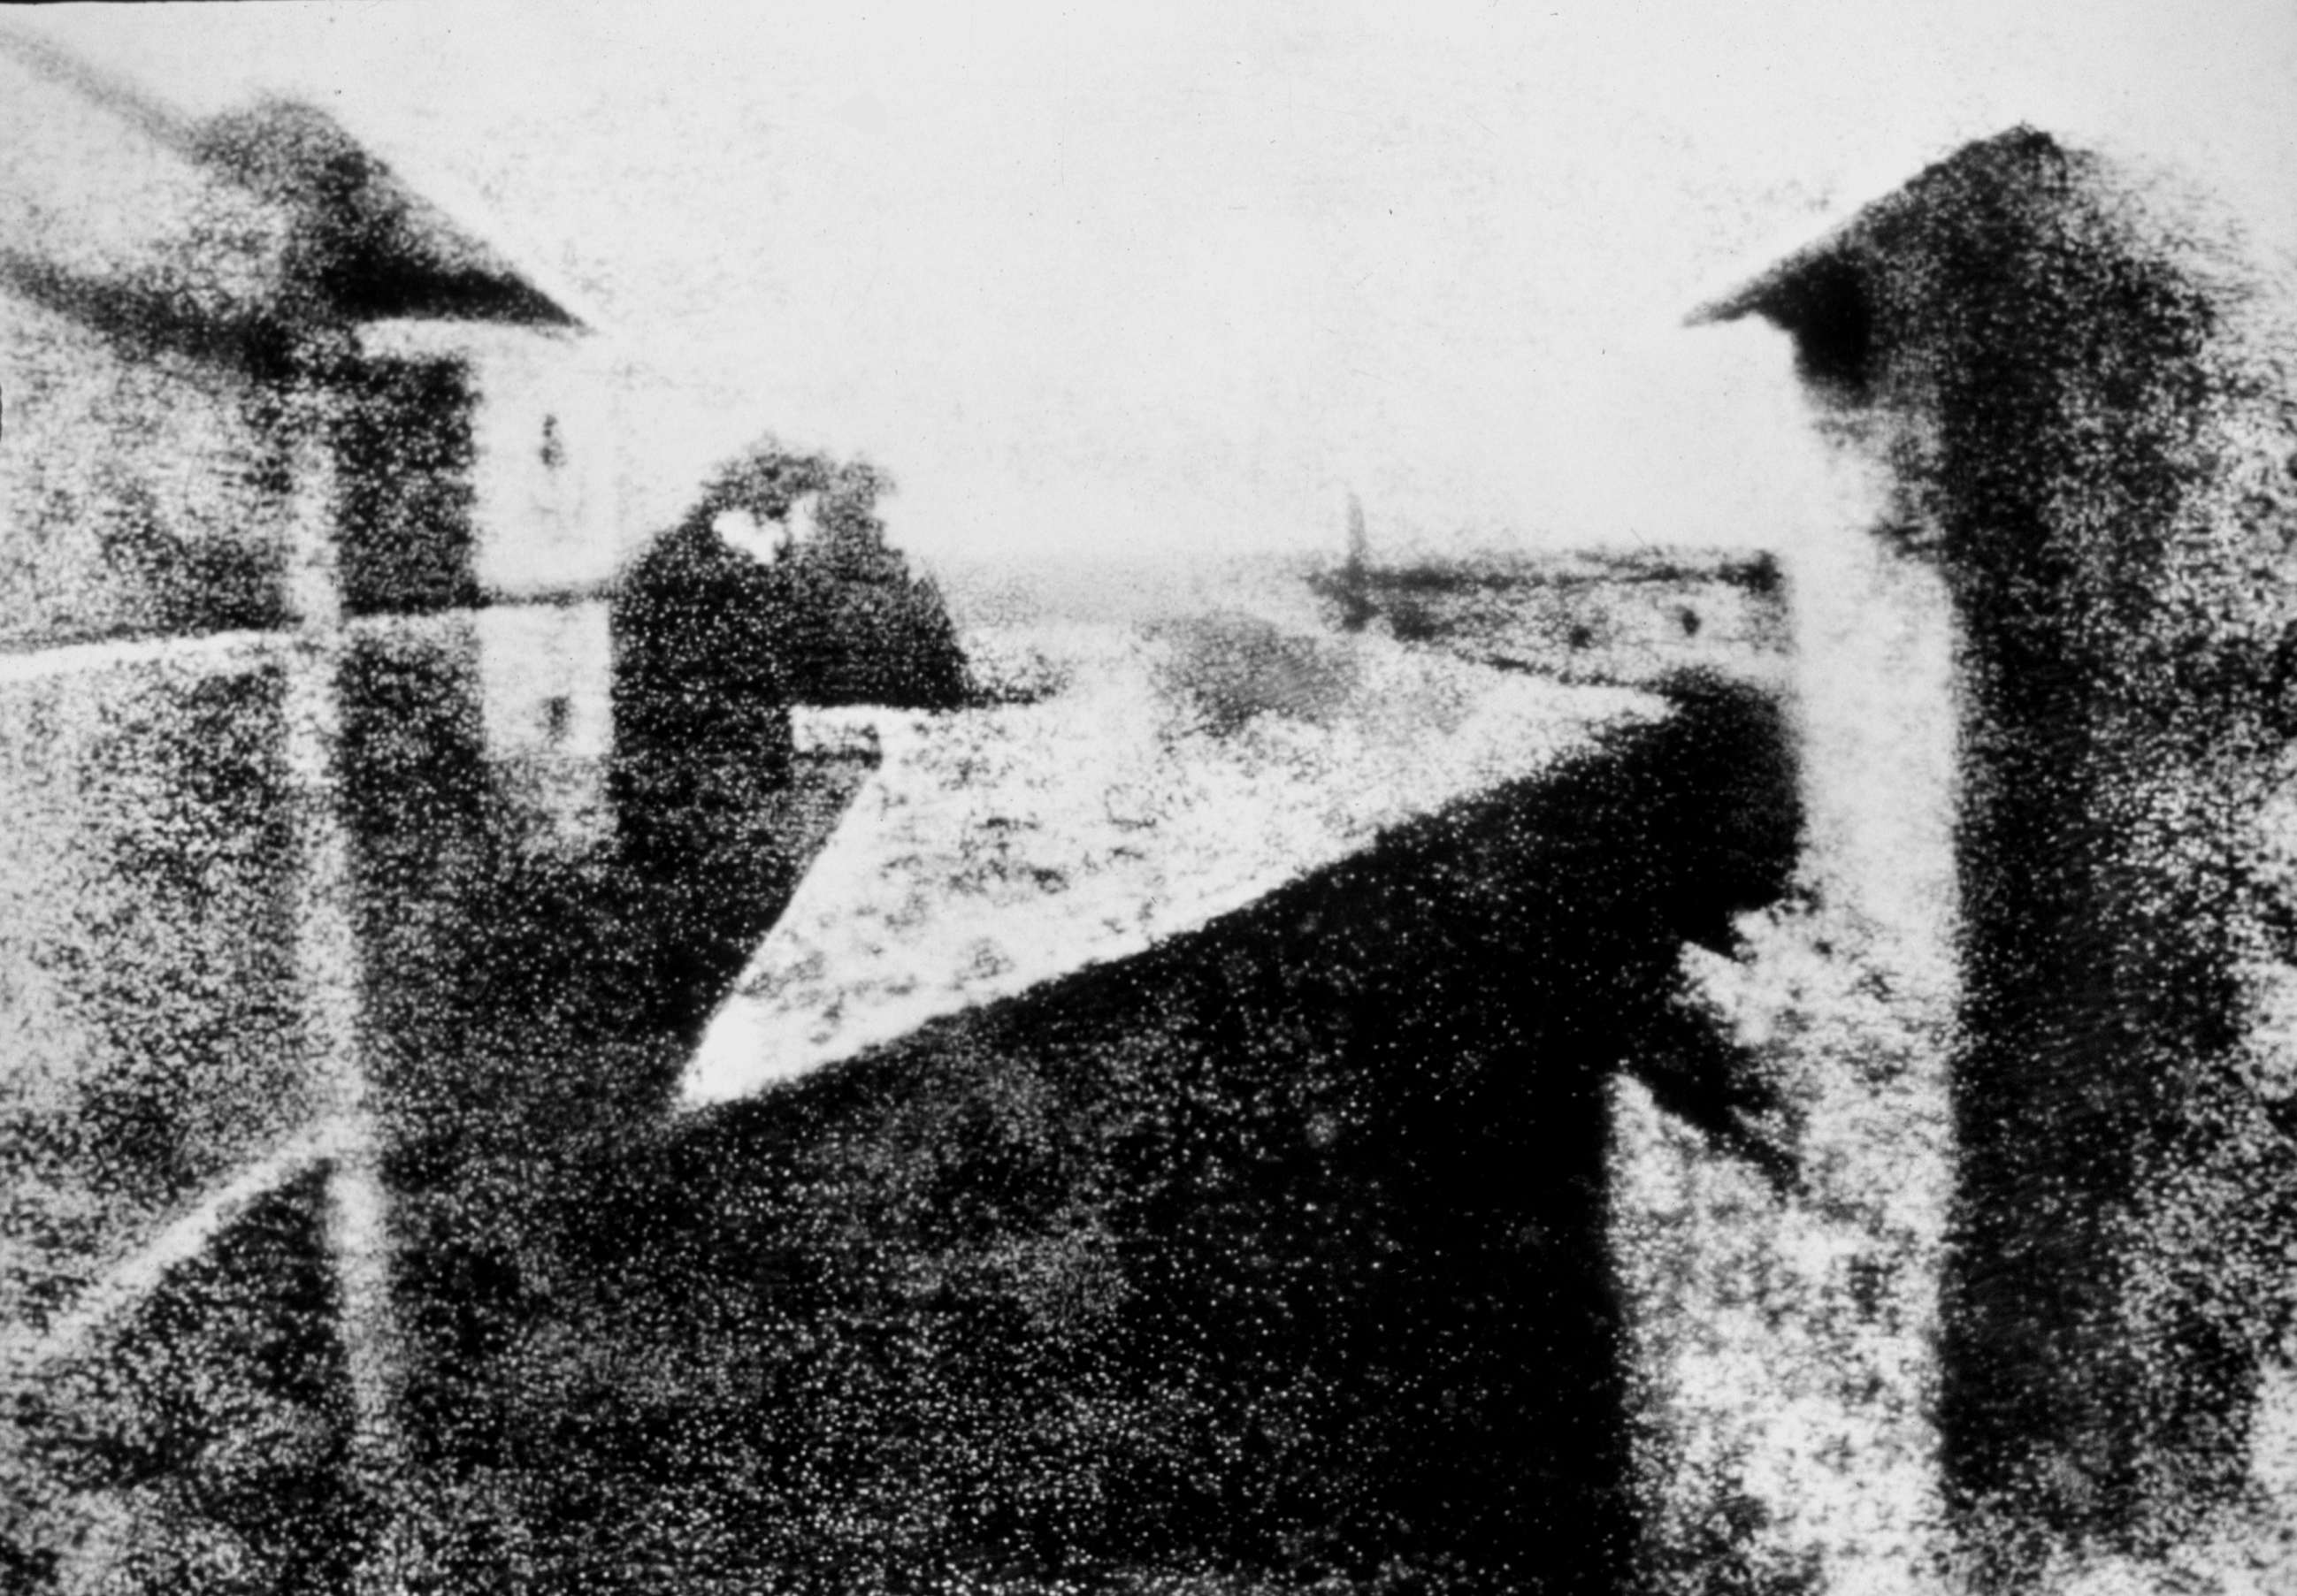 Enhanced version of Niépce's View from the Window at Le Gras (1826 or 1827), the earliest surviving photograph of a real-world scene, made using a camera obscura.[11]